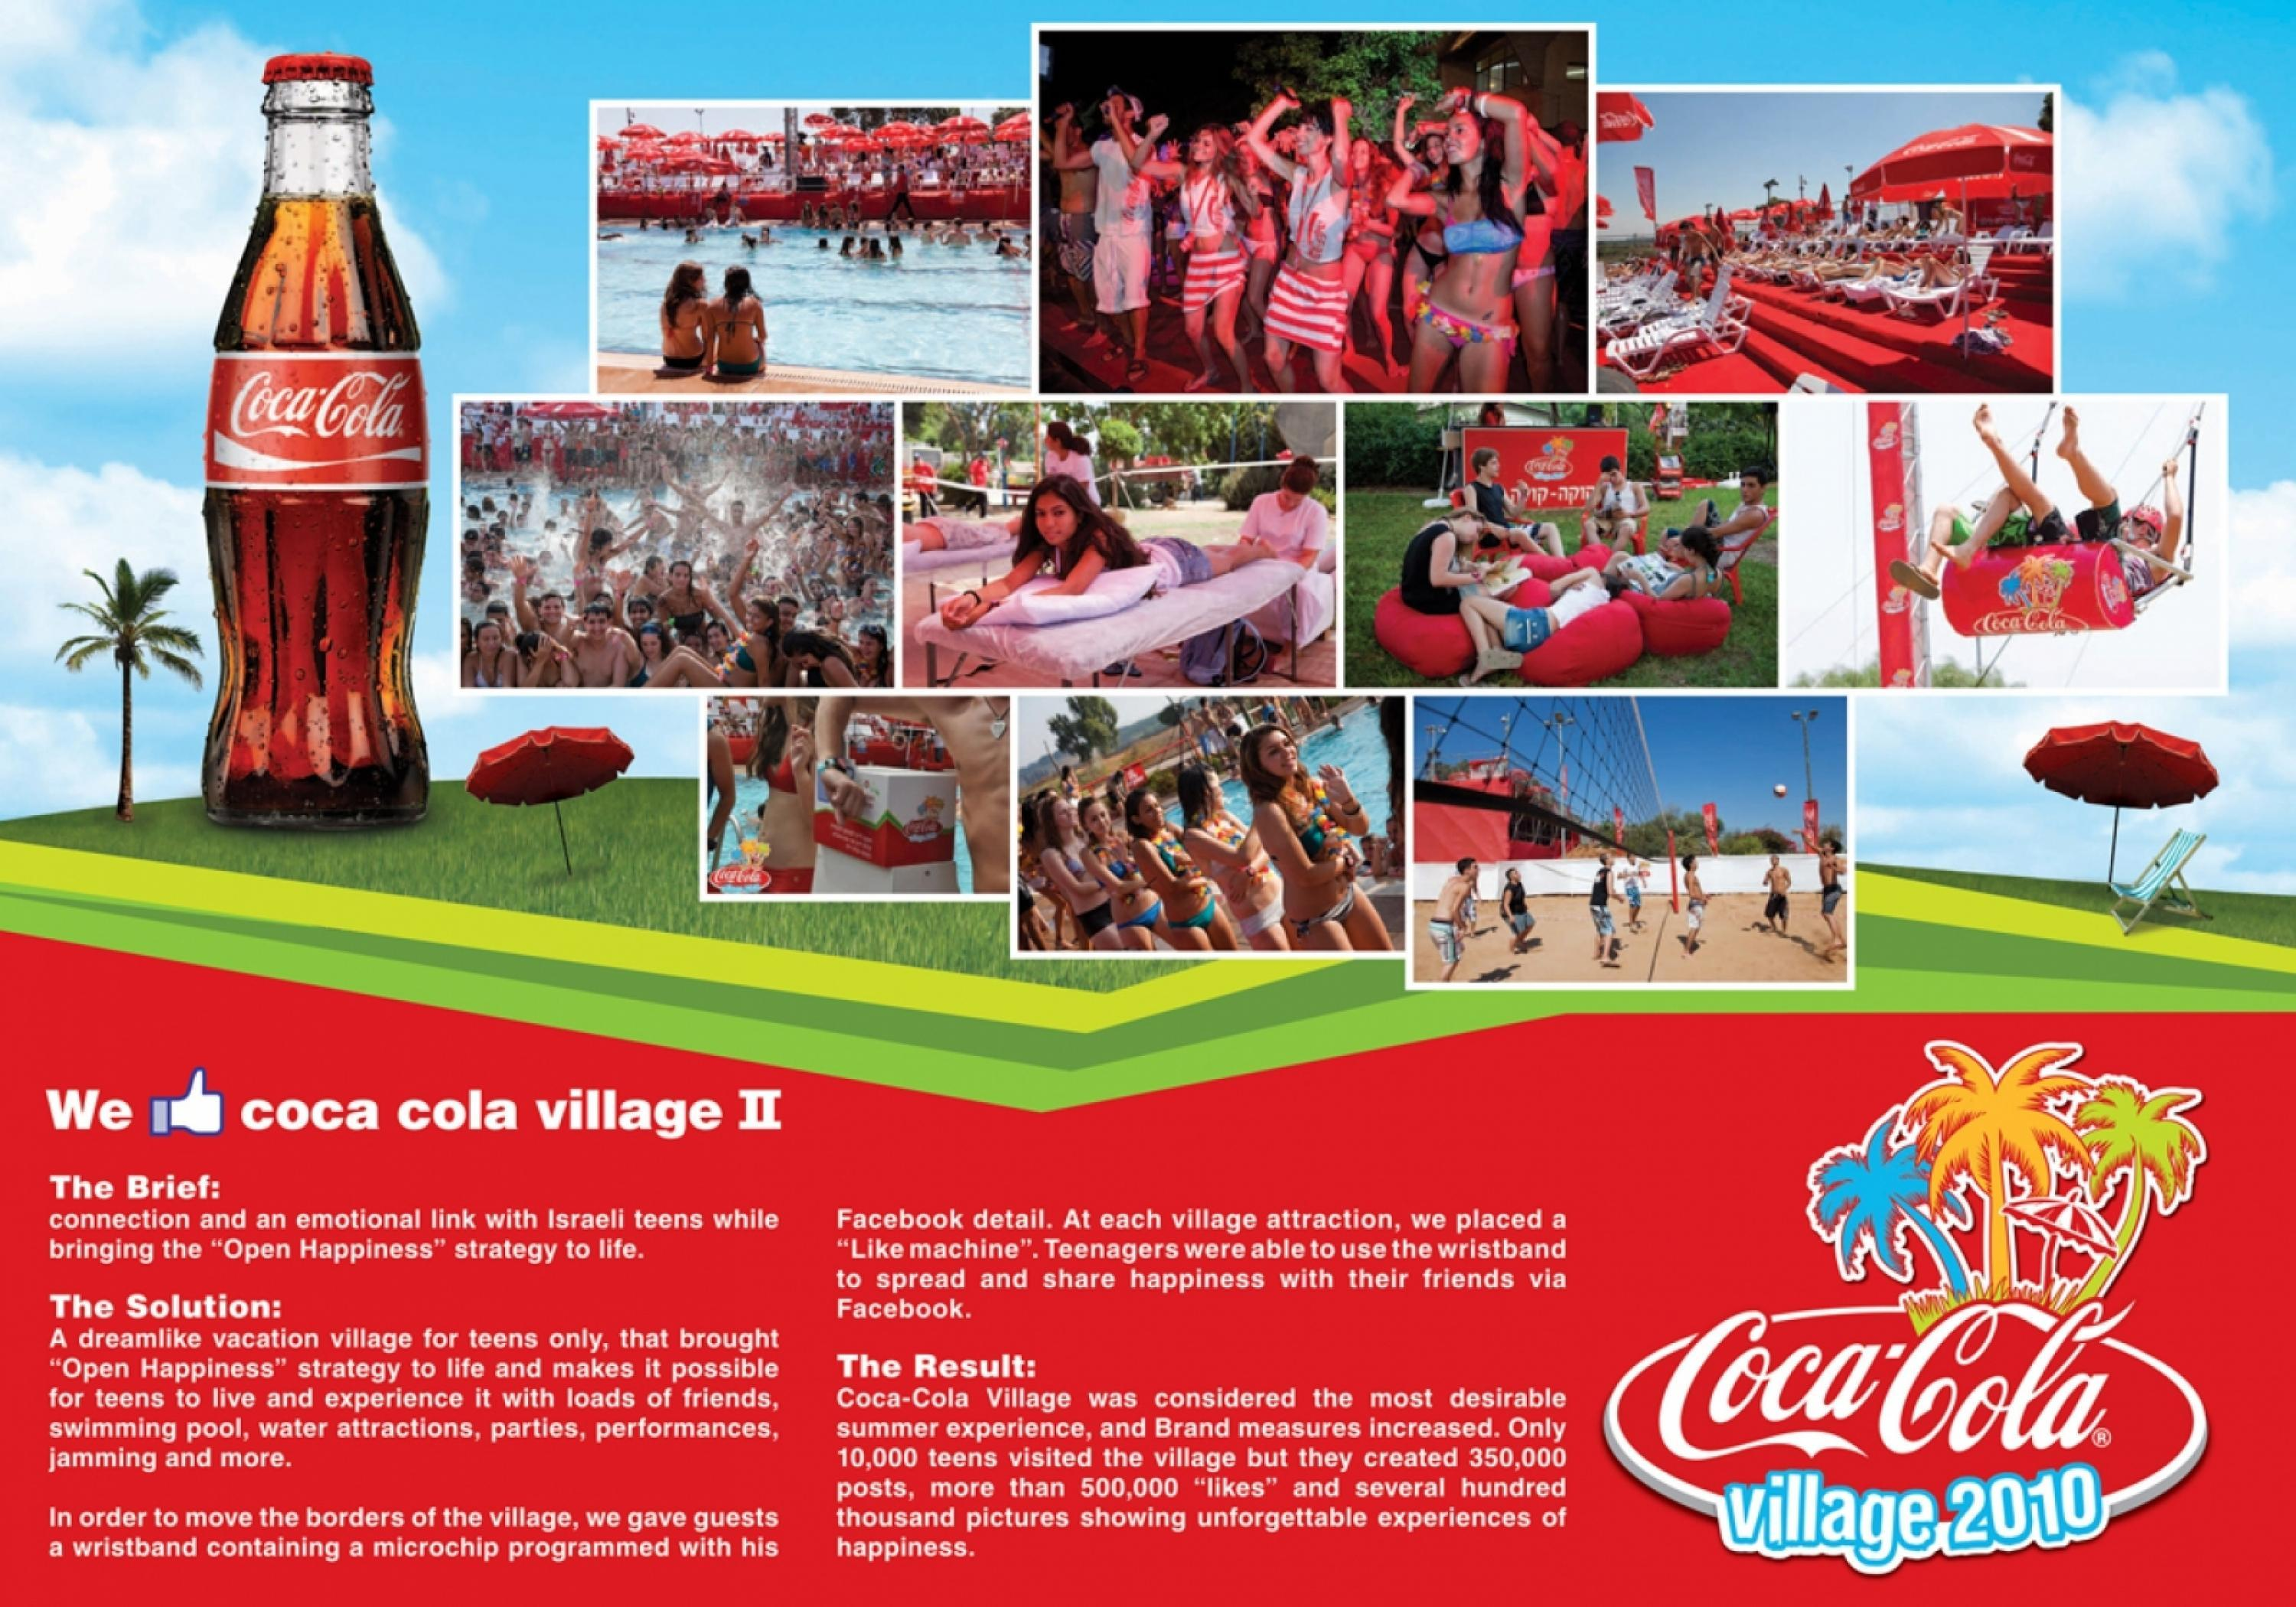 coca cola external analysis Coca-cola's ability to maintain a strong global competitor over the last 125 years is evident of the company's knack to foster success by being flexible, broad in thought, and provide transparency of and within the organization.